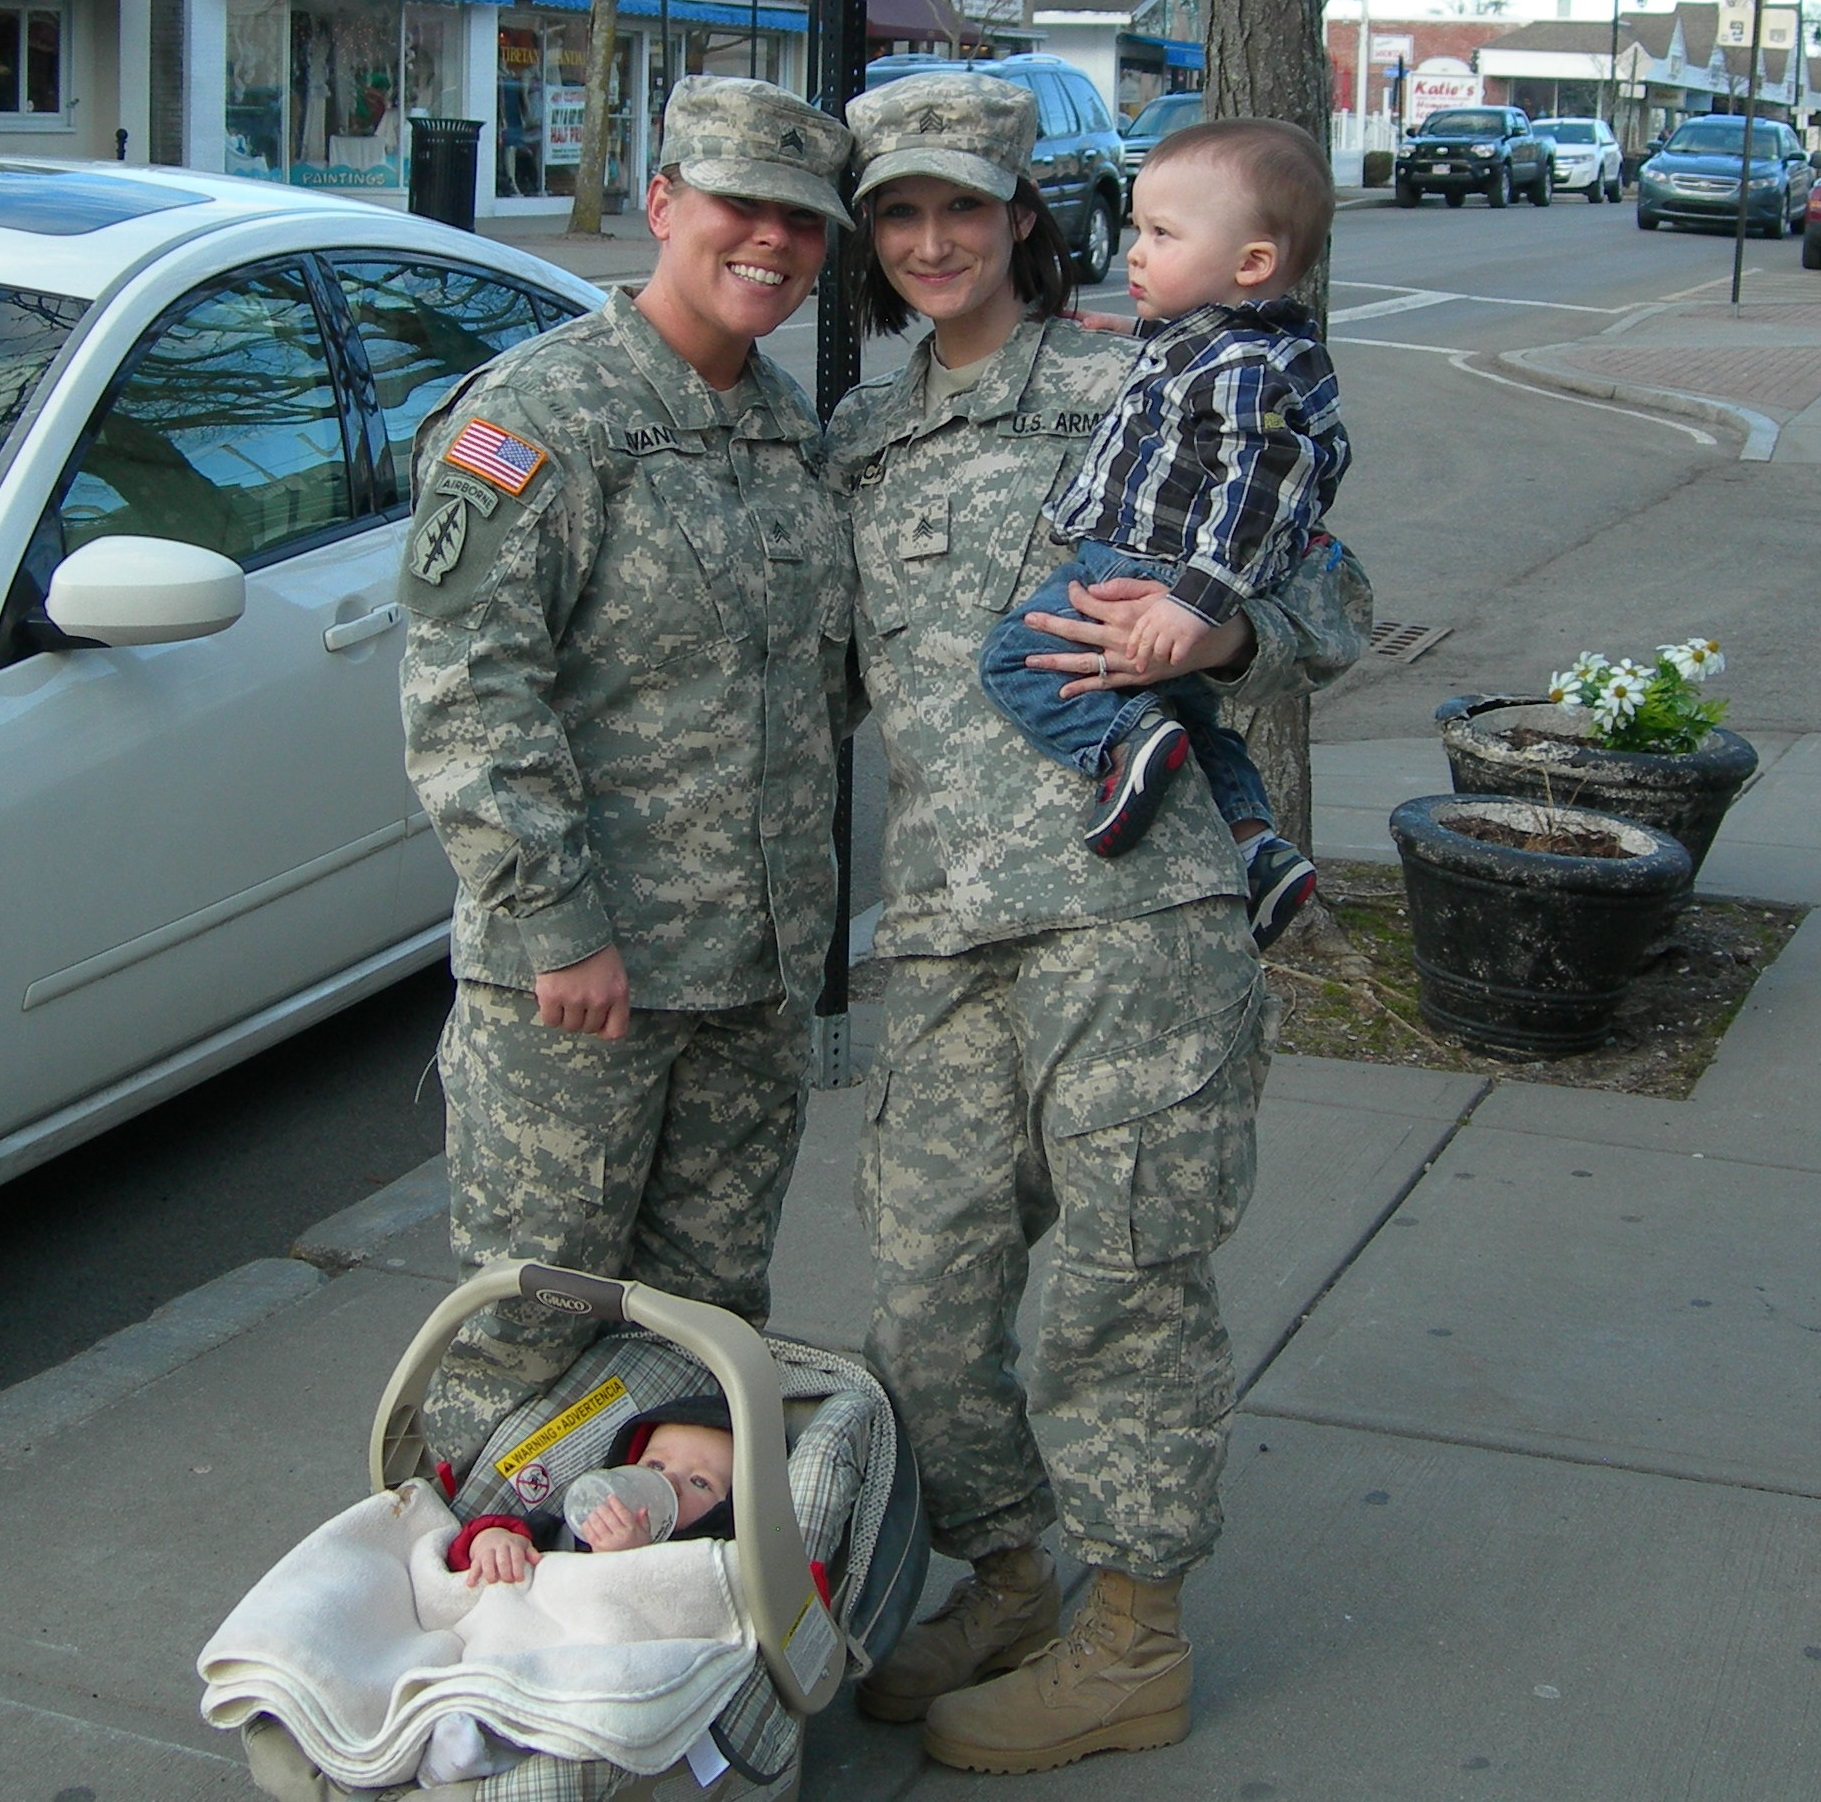 Meet the young soldiers who keep their babies and the rest of us safe…